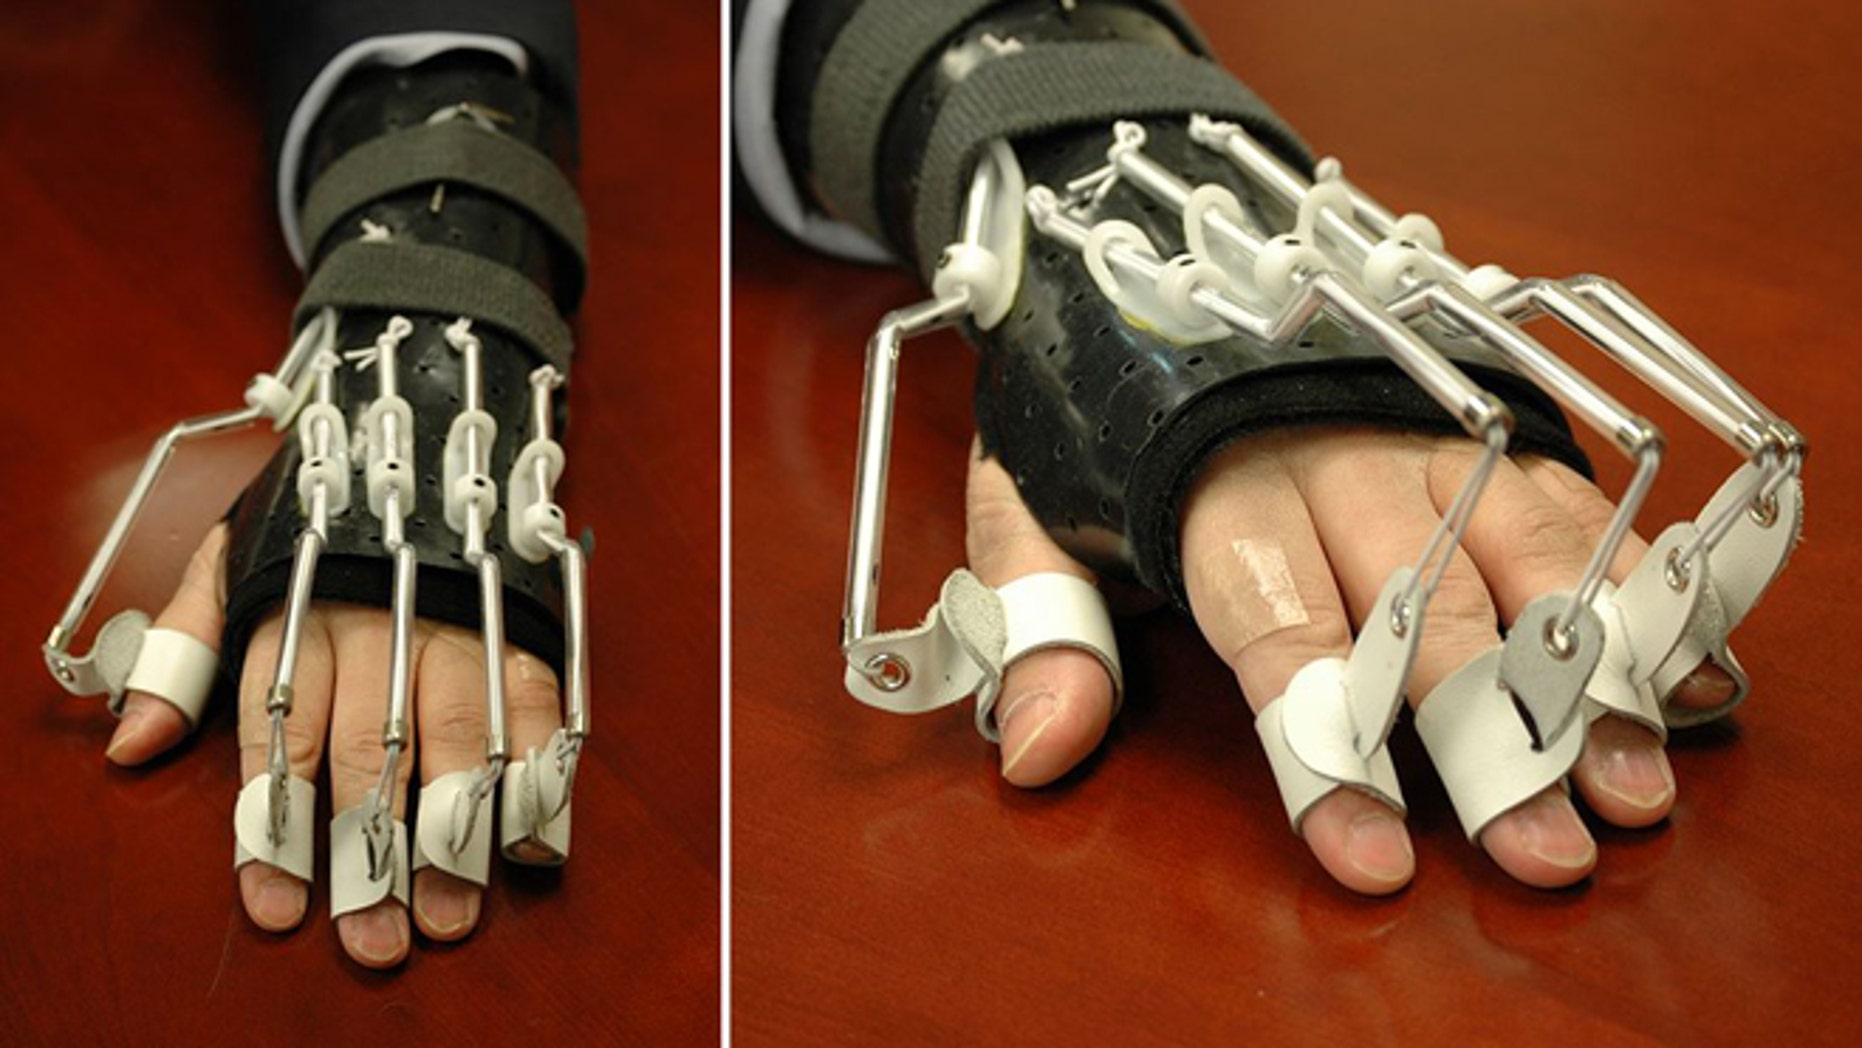 US Ambassador Mark Lippert was outfitted with a bionic hand to help him recover after last month's attack.